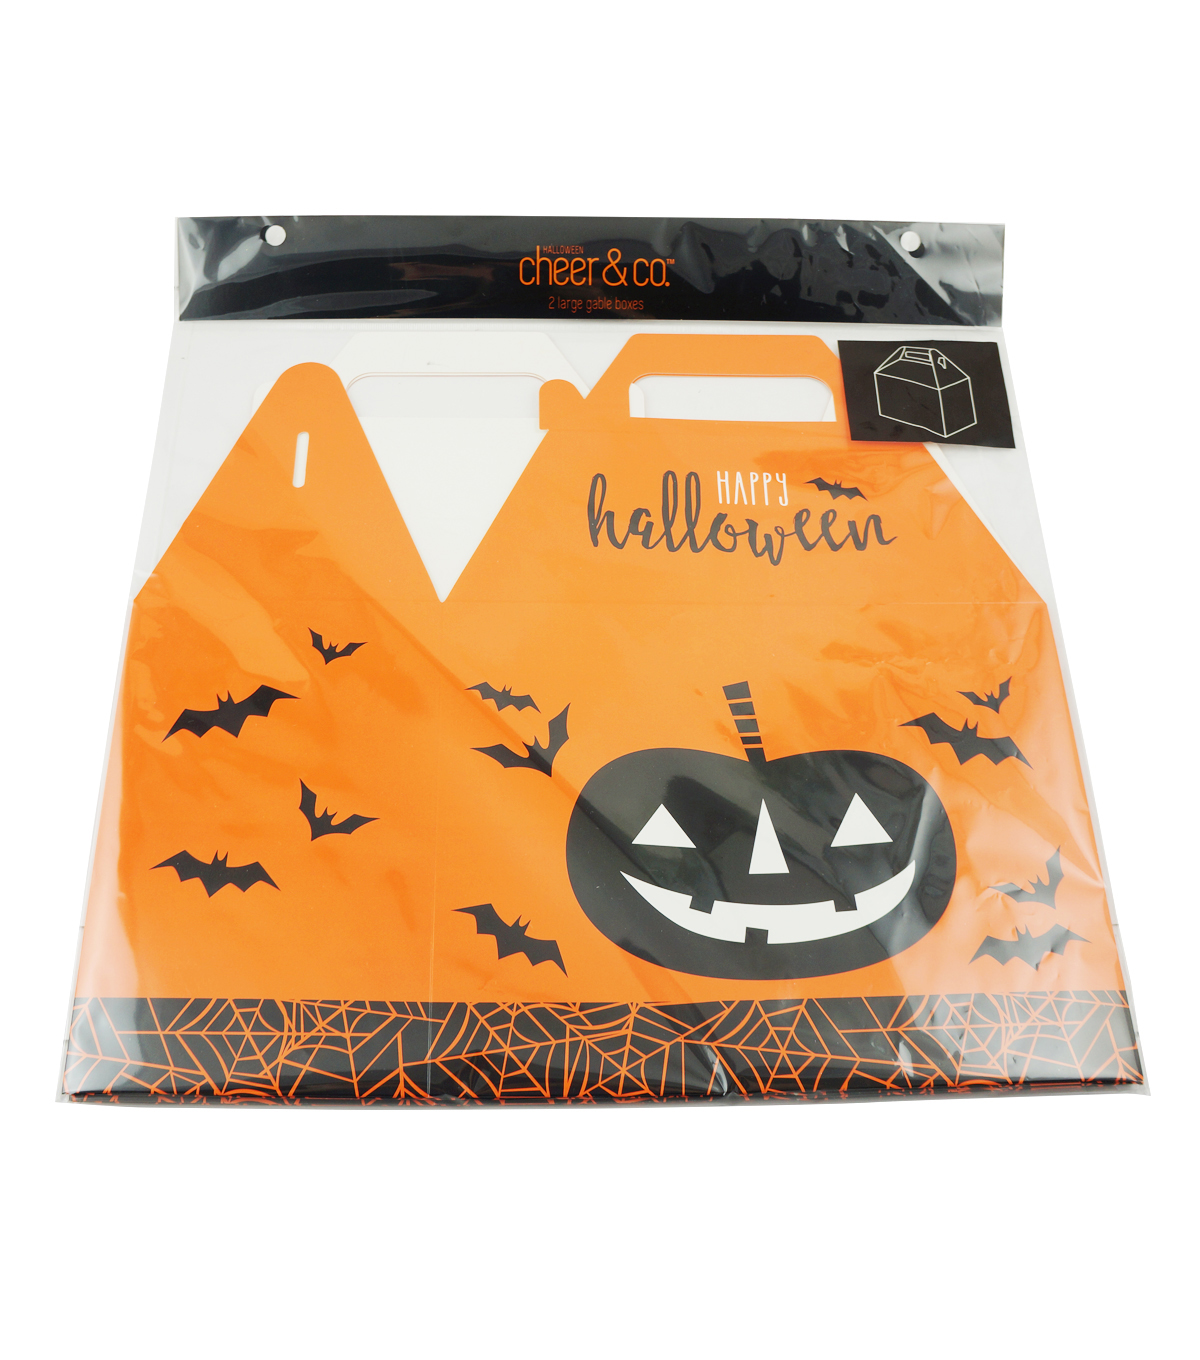 Cheer & Co. Halloween 2 pk Large Gable Boxes with Window-Pumpkin & Bats